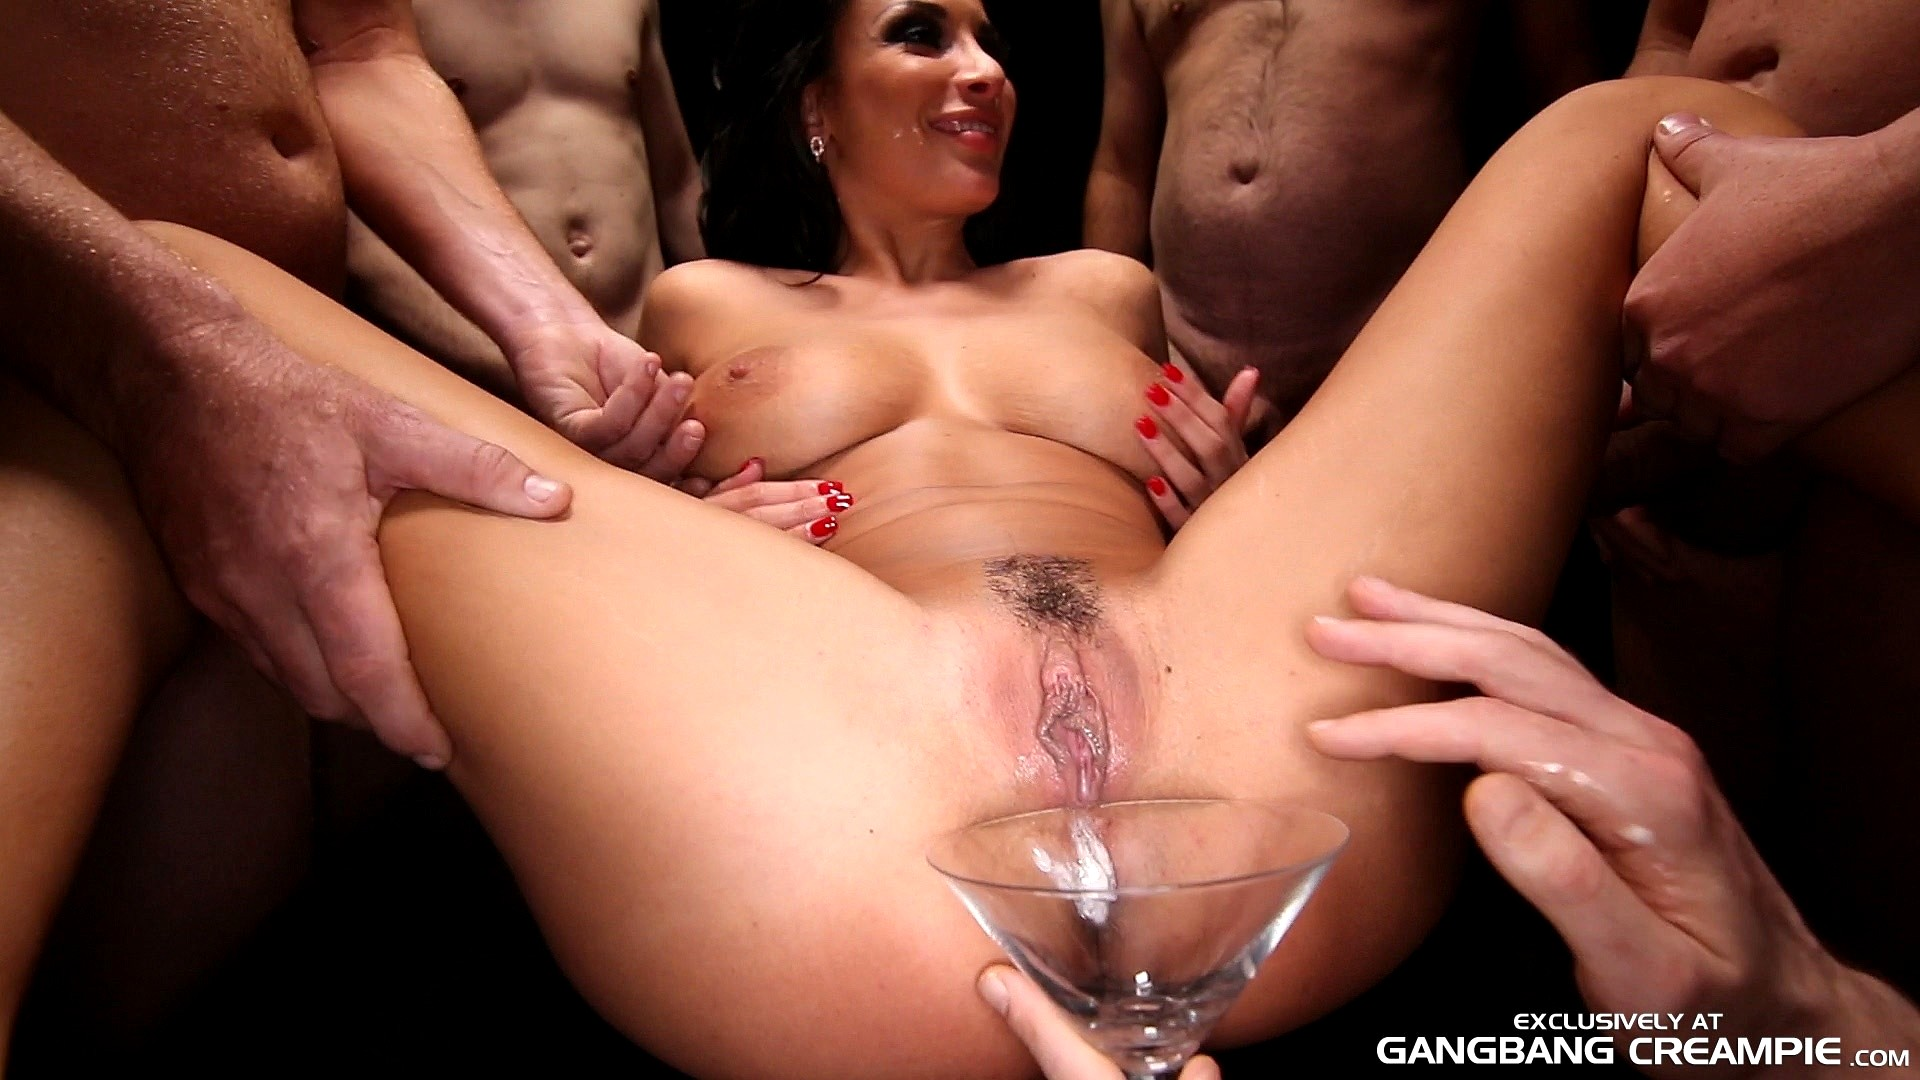 anal-gangbang-creampie-videos-male-nude-on-farmer